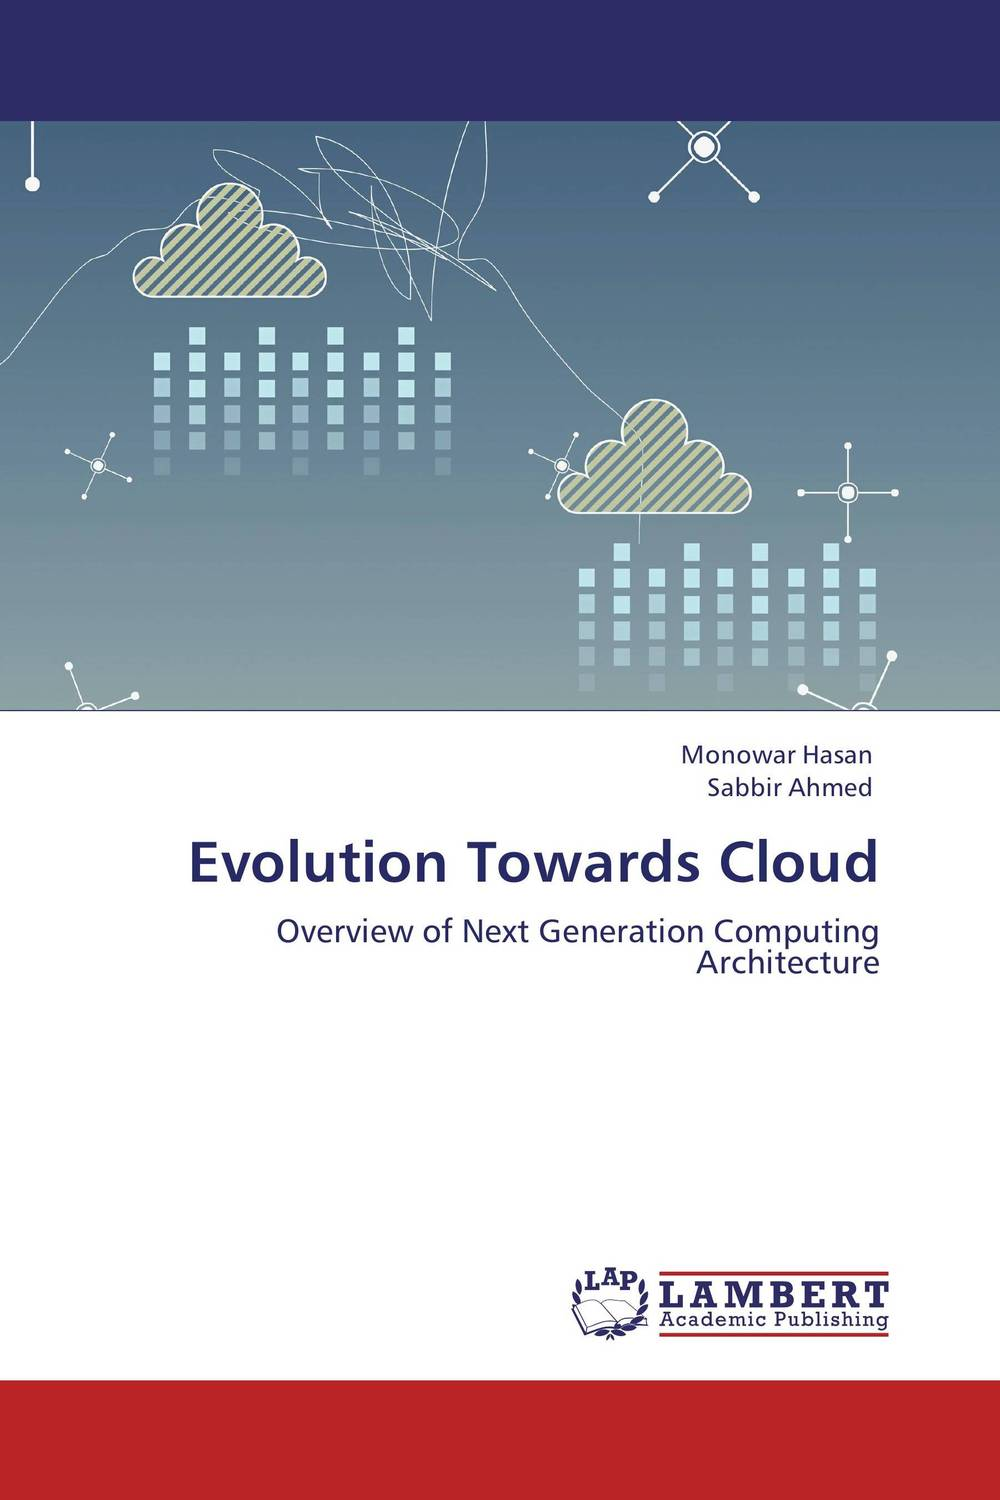 Evolution Towards Cloud communications architecture in support of grid computing